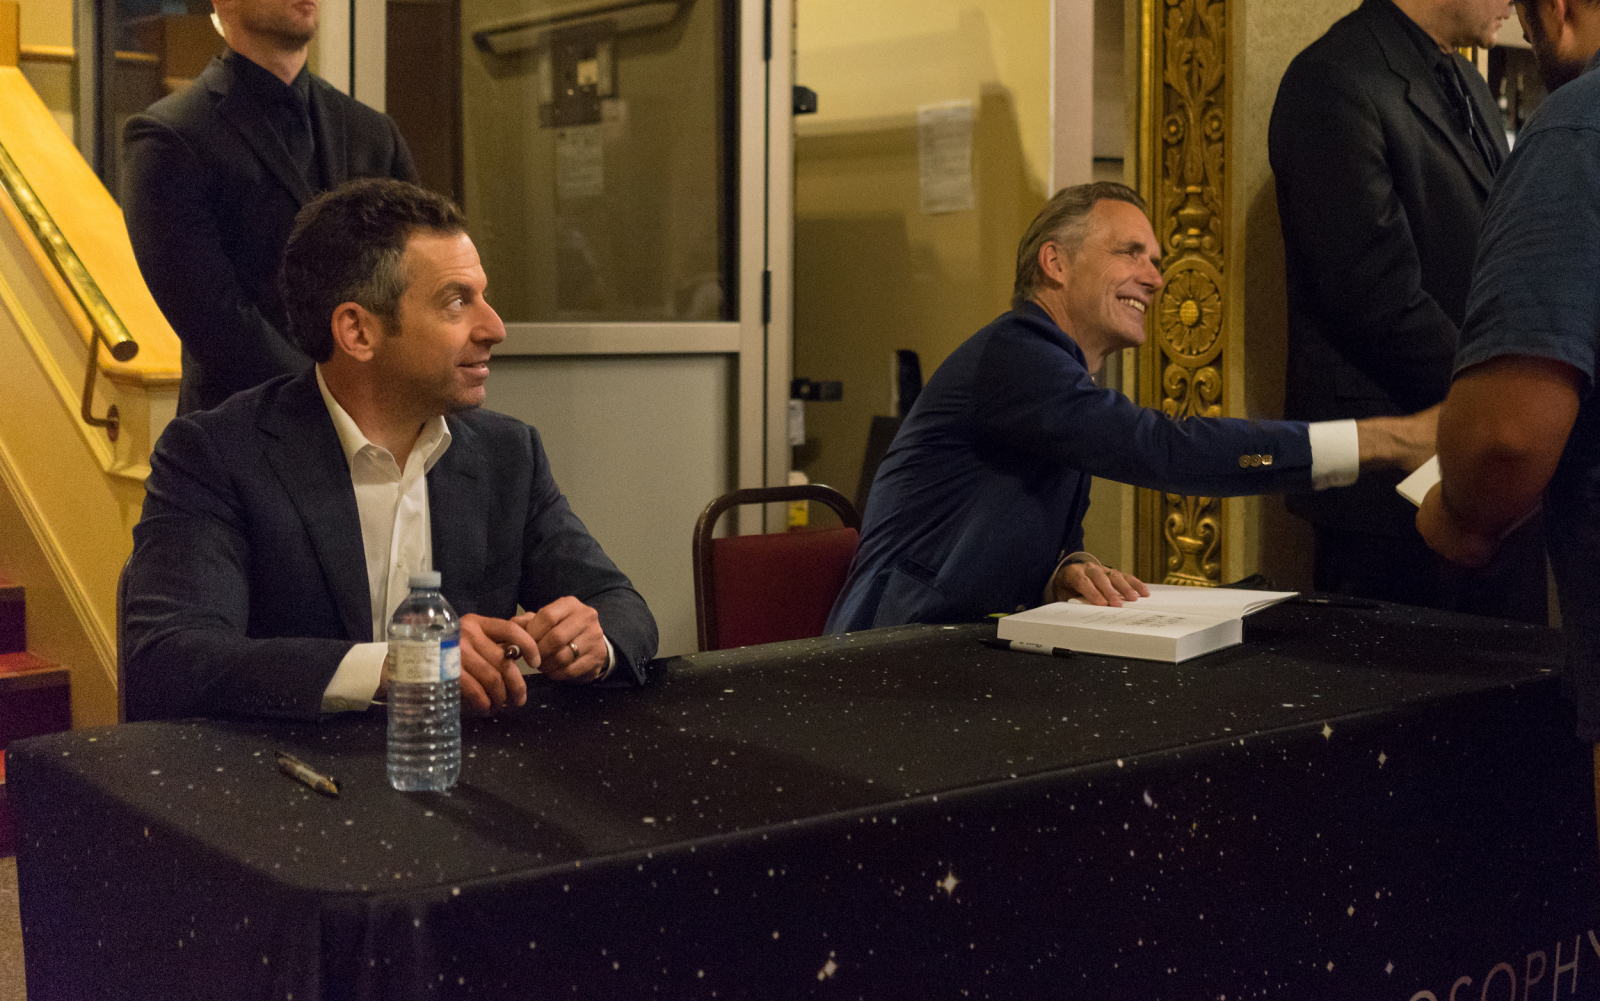 Sam Harris and Jordan Peterson waste a lot of time, then talk about